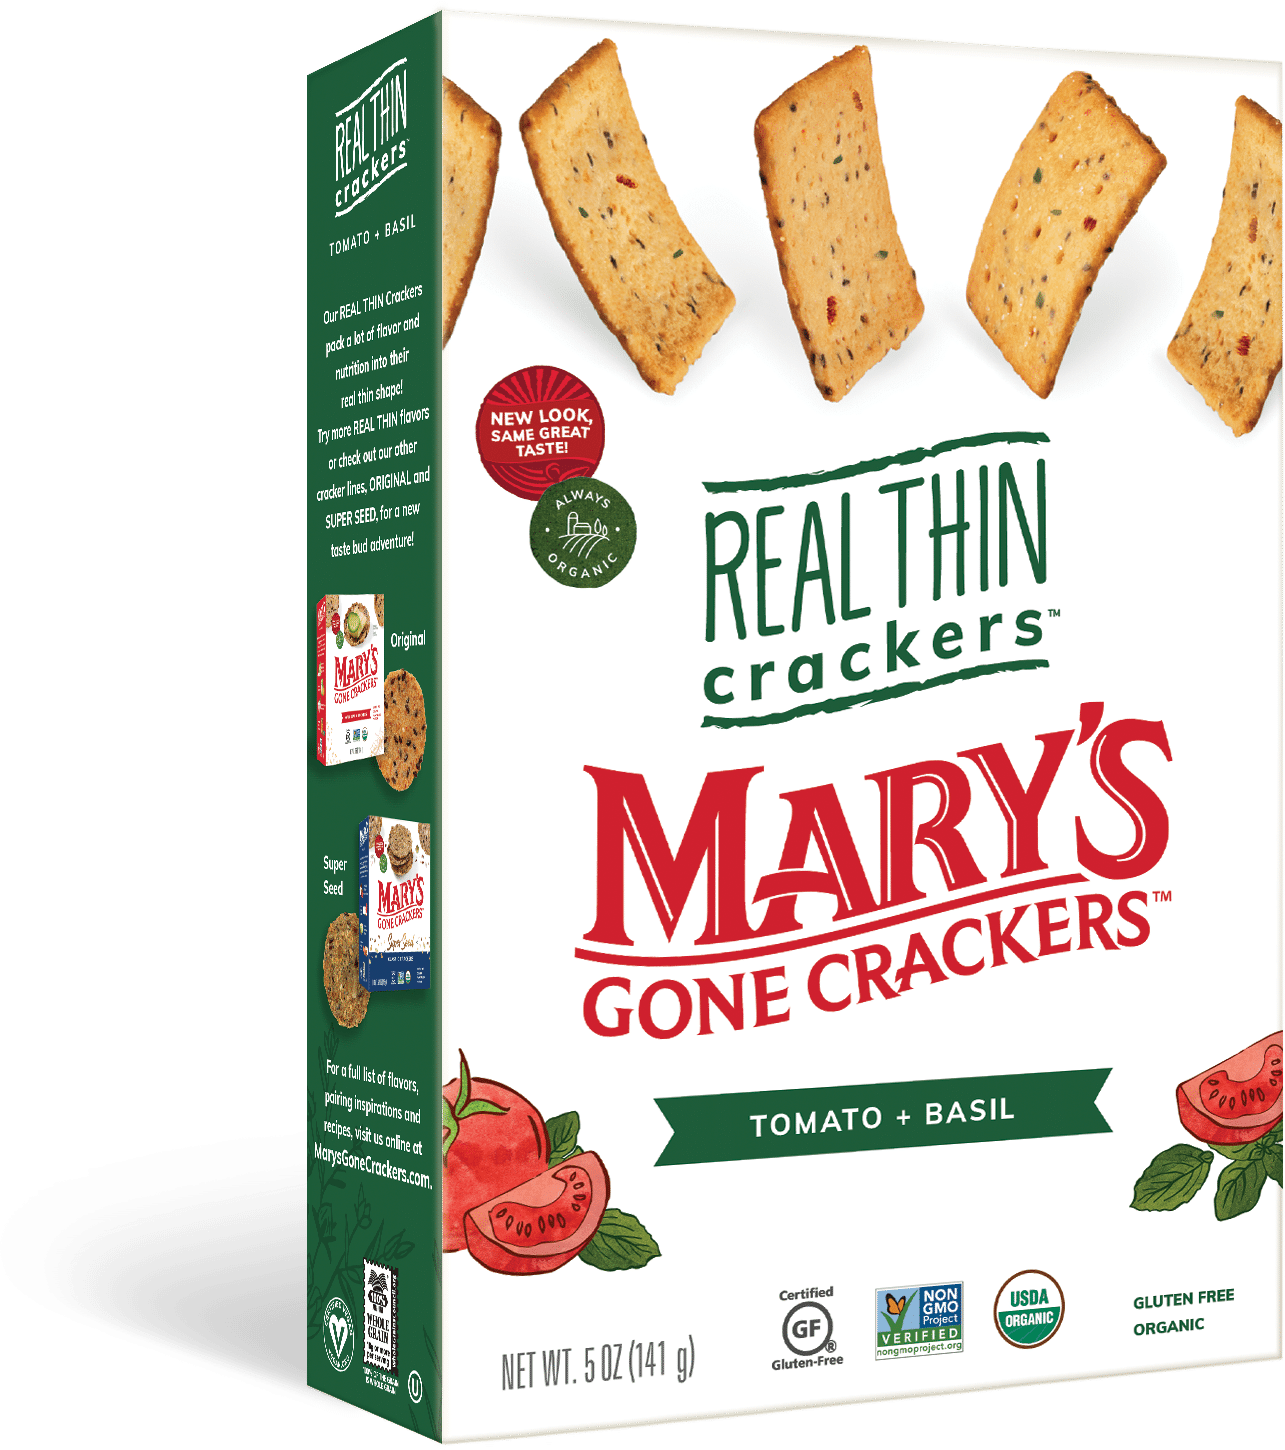 Mary's Gone Crackers Adds Three New Flavors to Real Thin Crackers Line